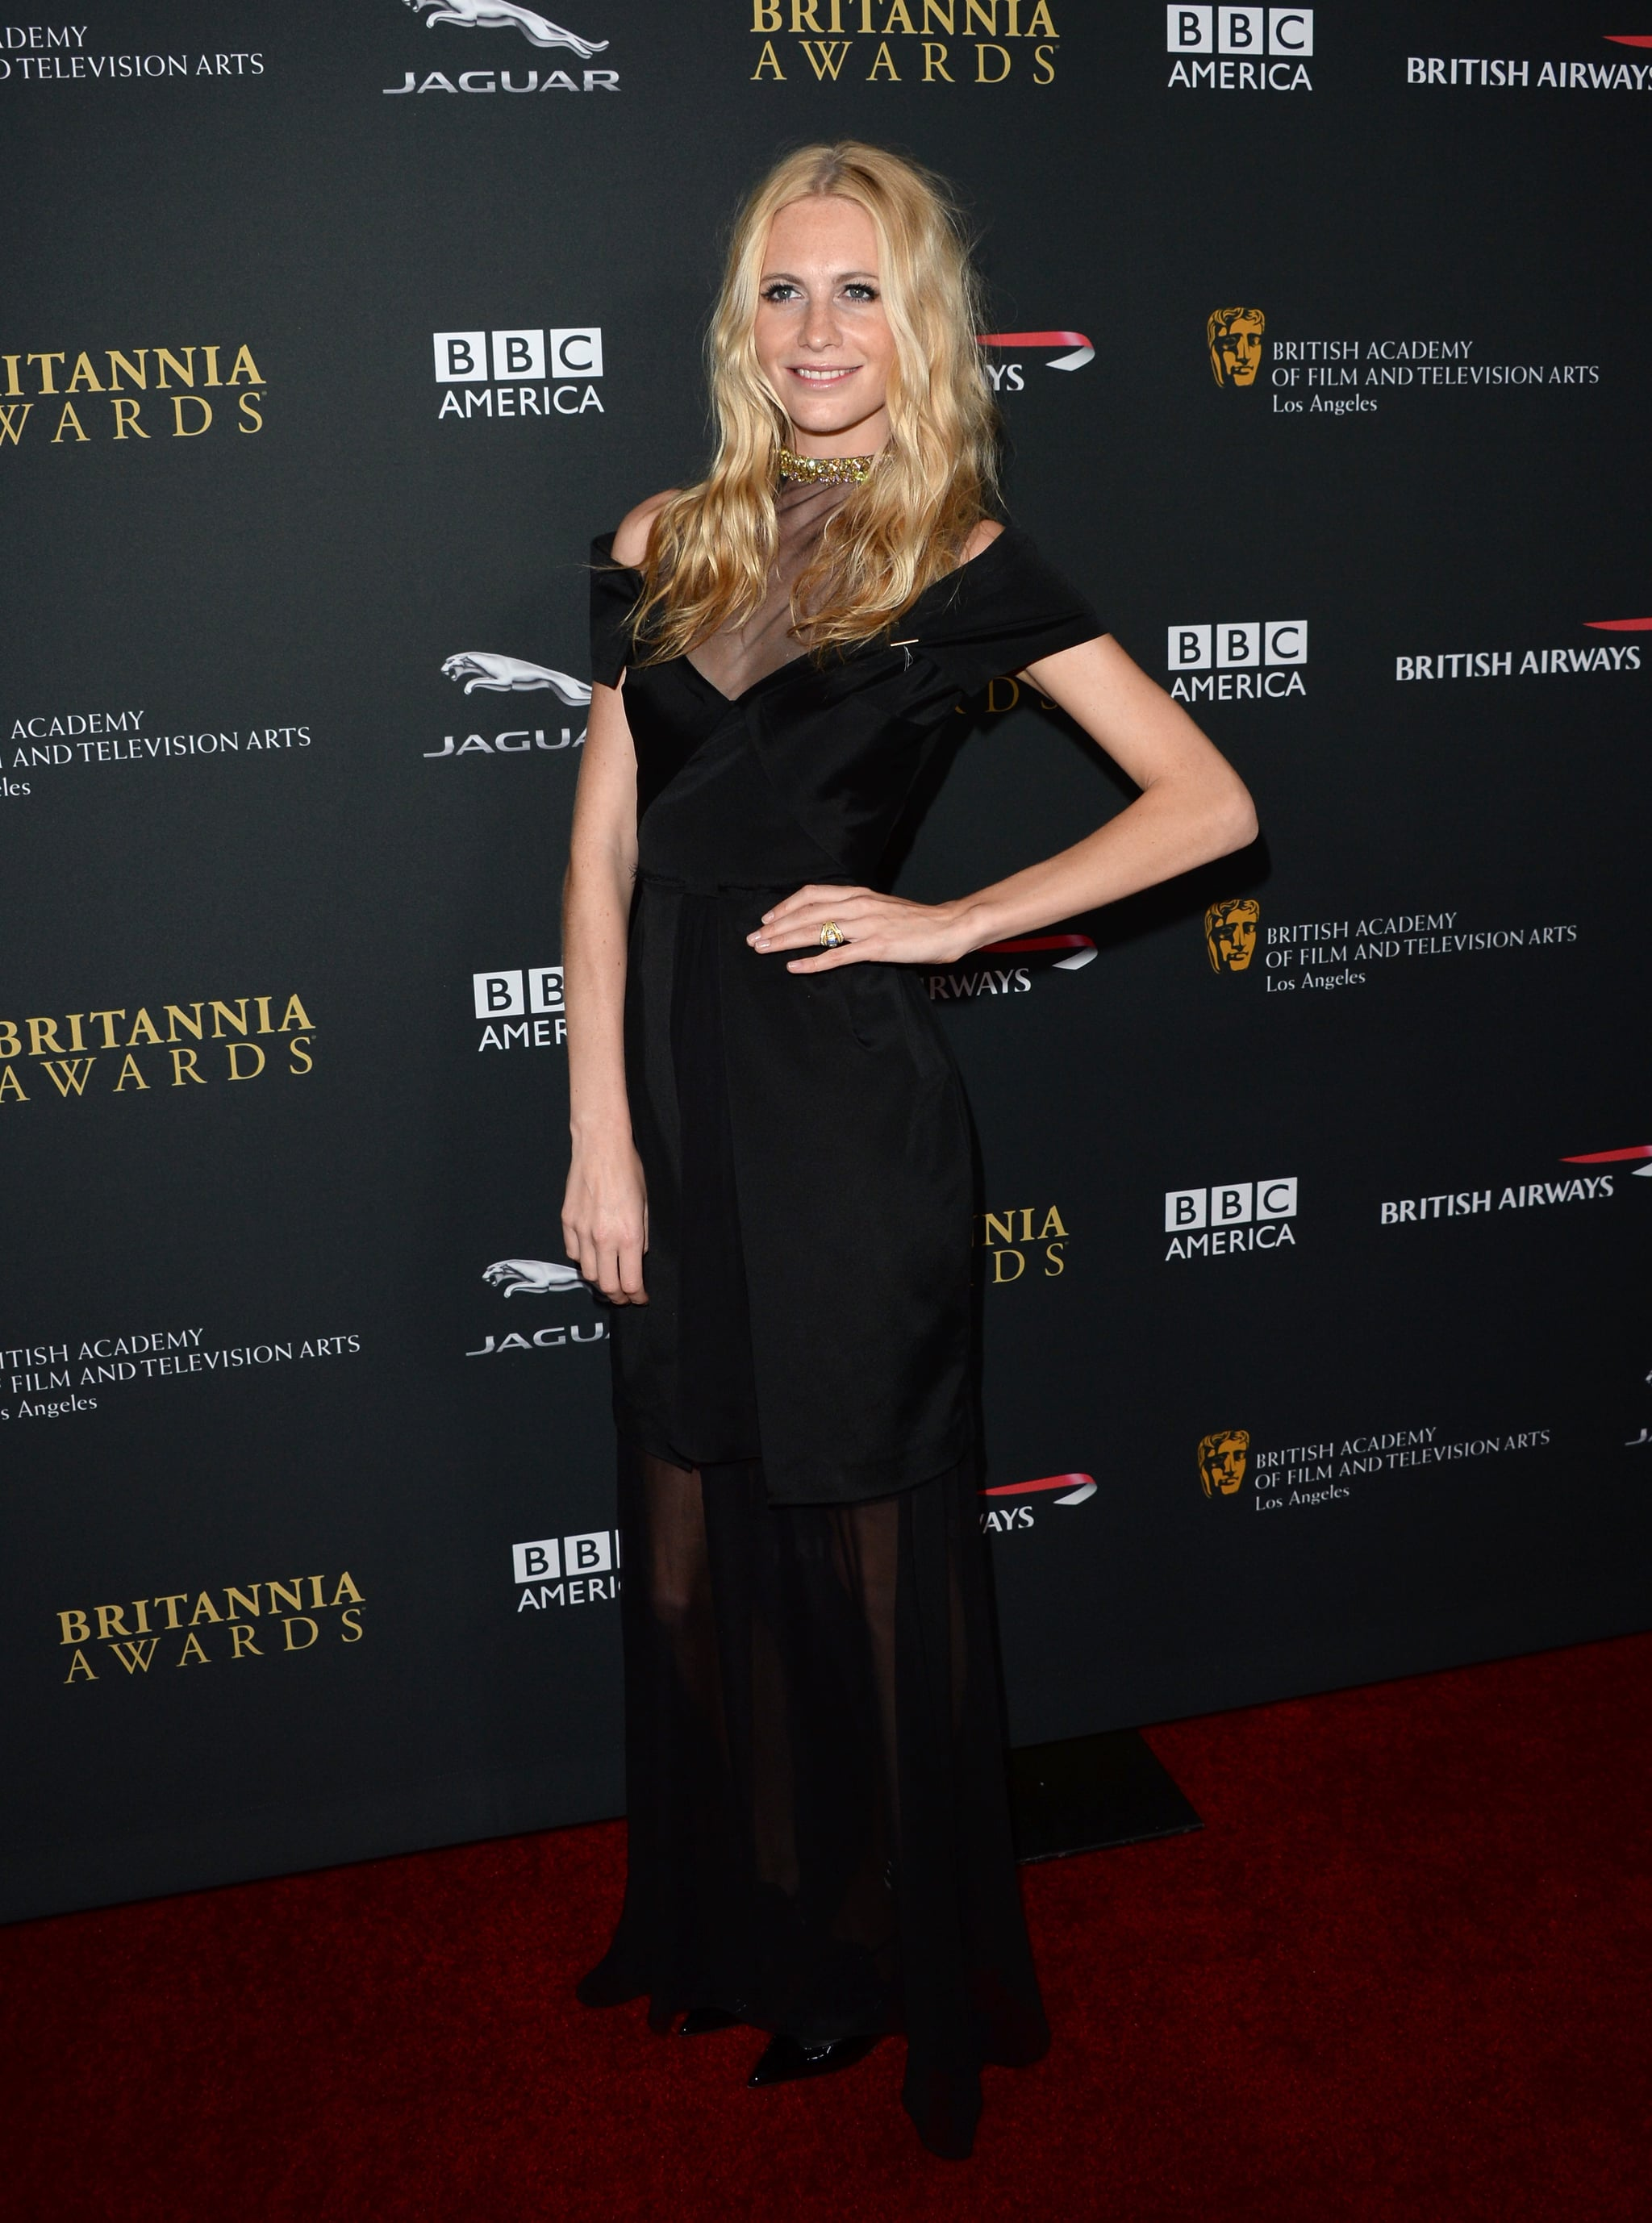 Poppy Delevingne posed on the red carpet.